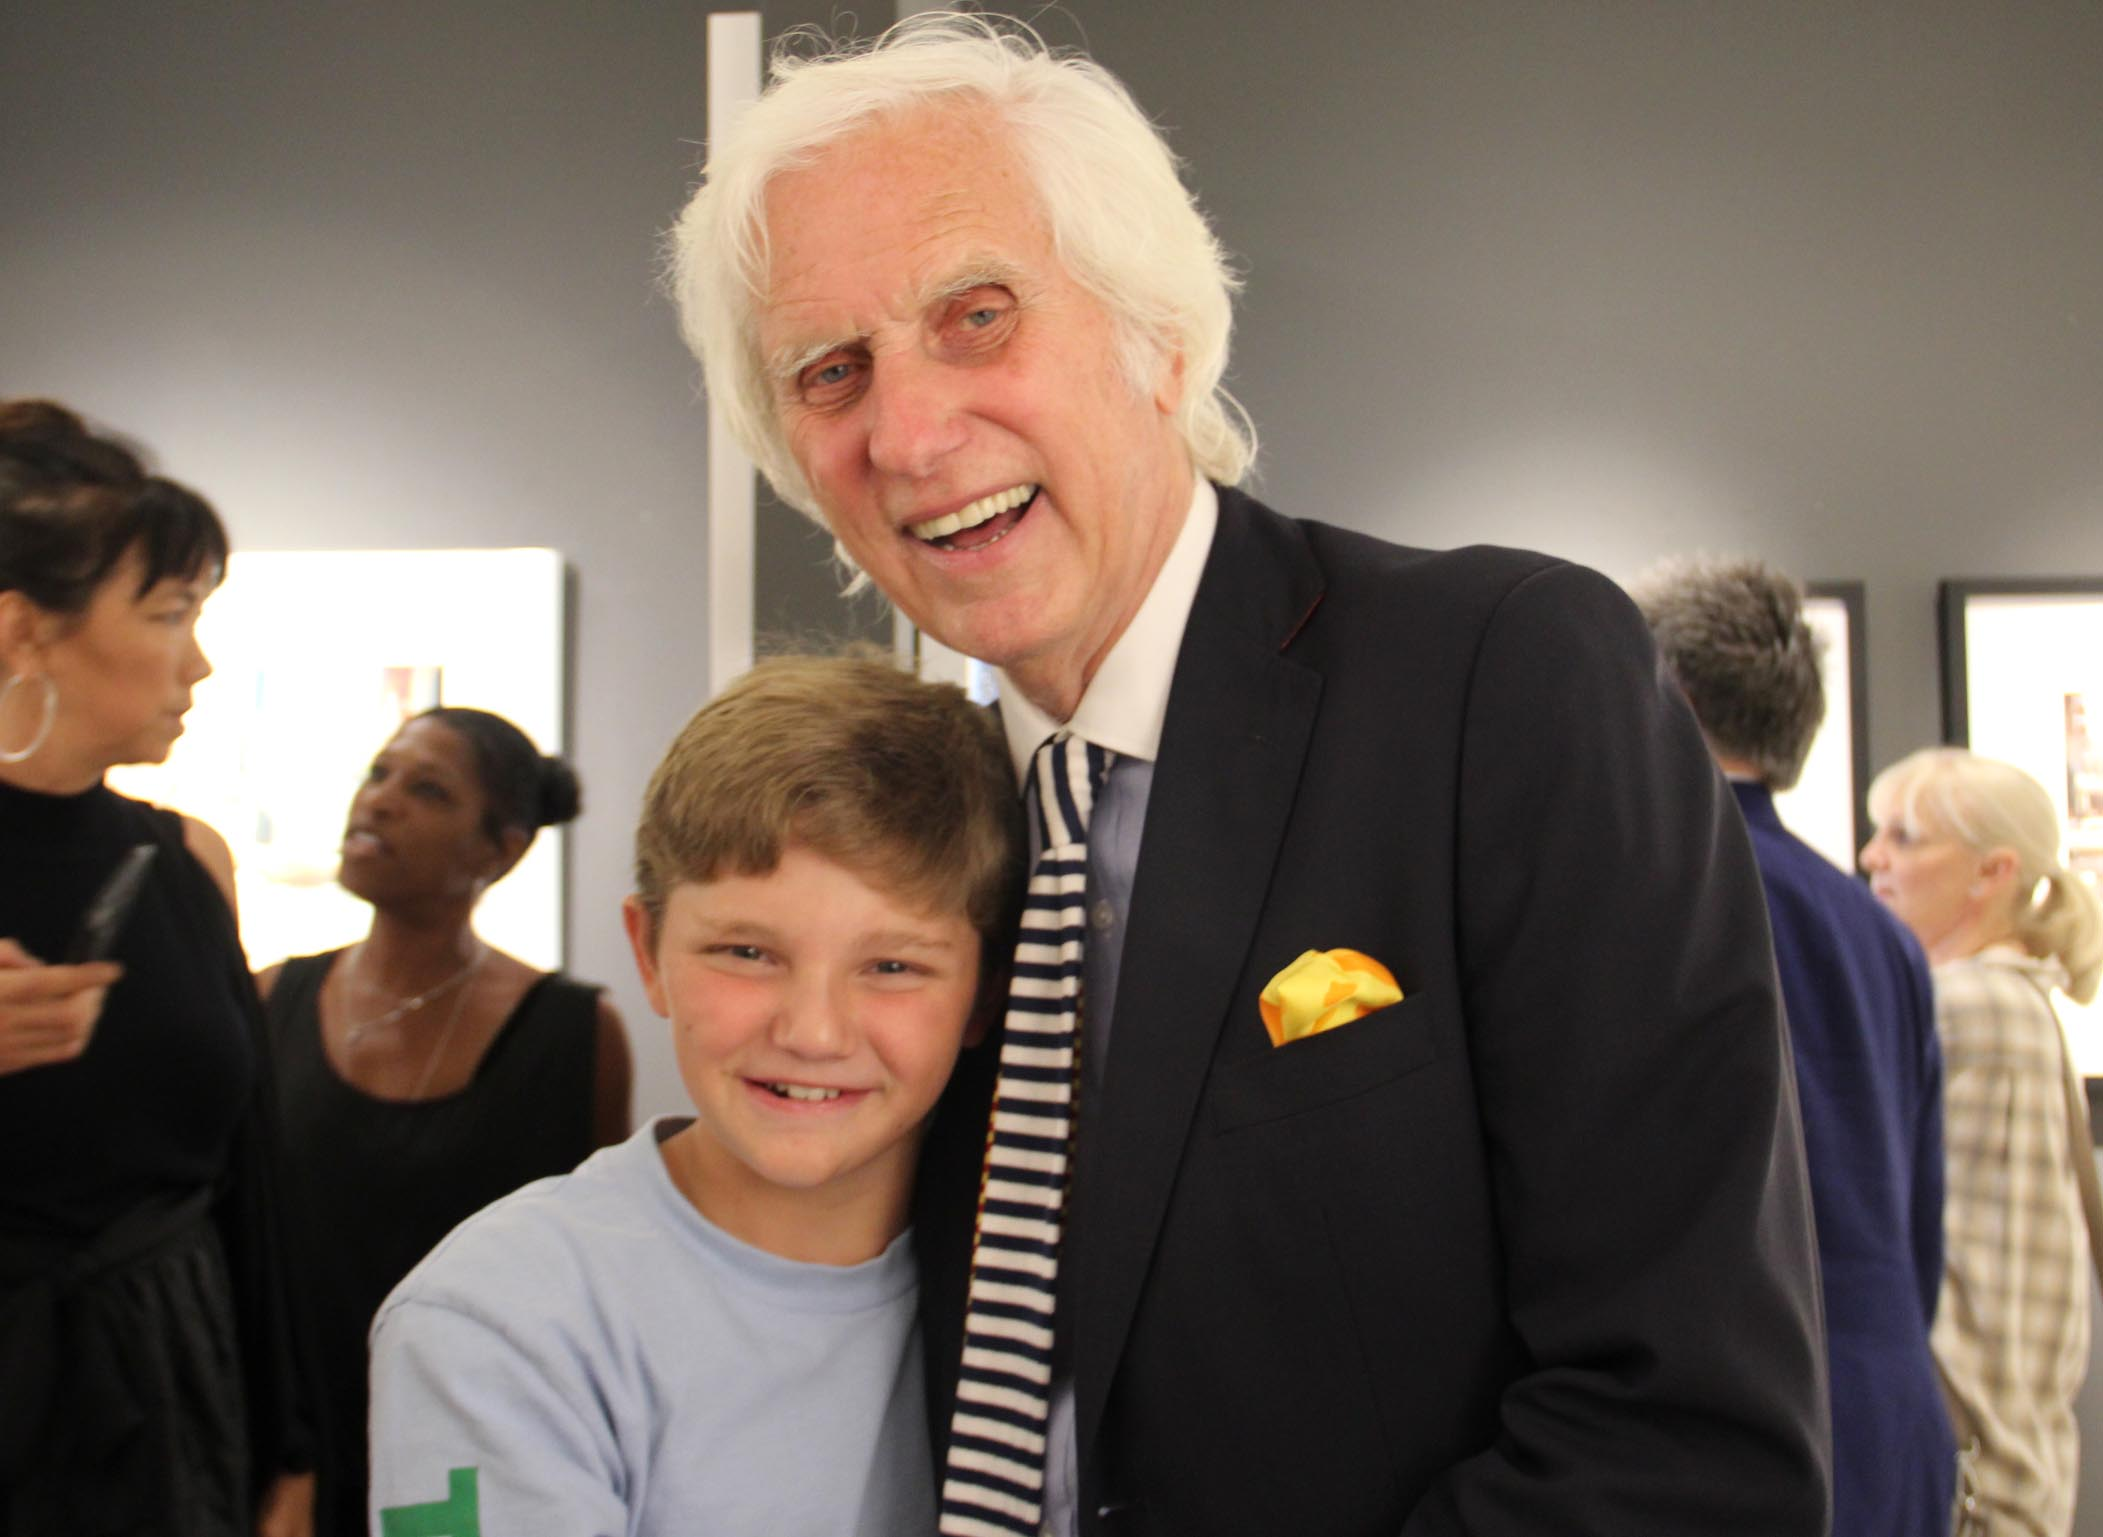 douglas kirkland and grandson, mouche gallery